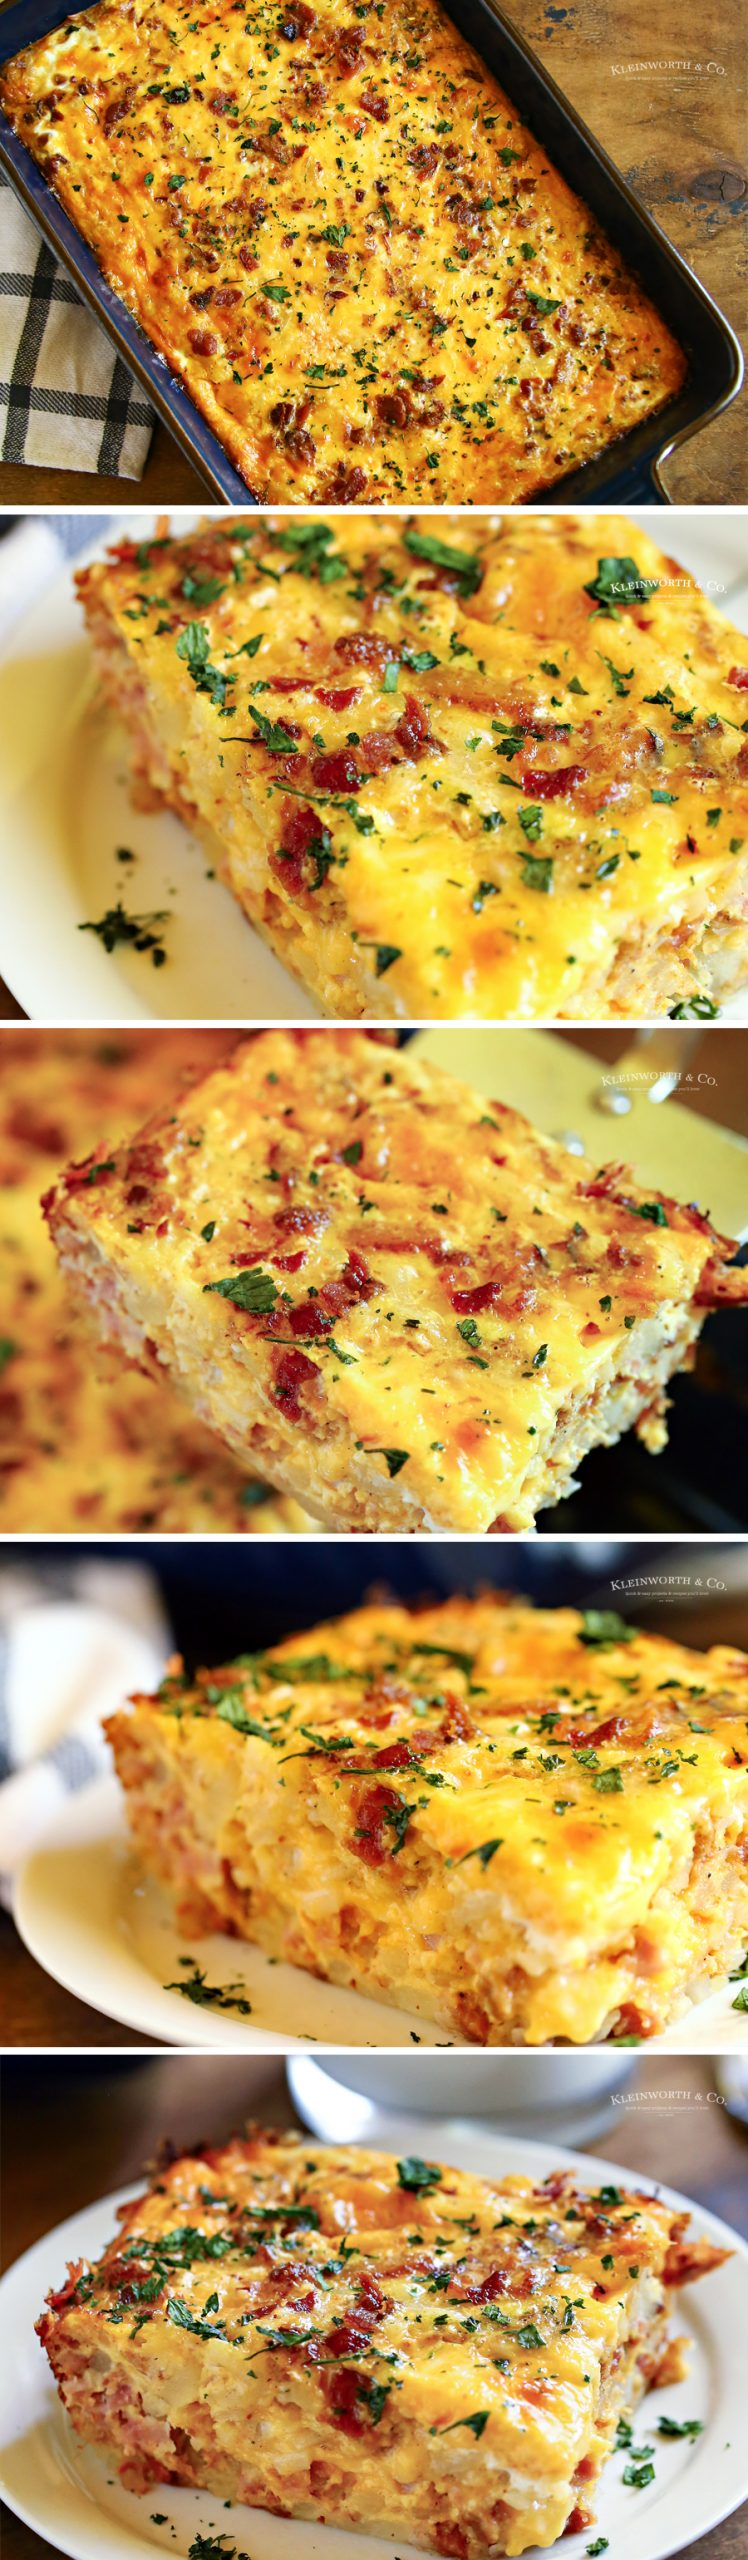 how to make Hashbrown Breakfast Casserole